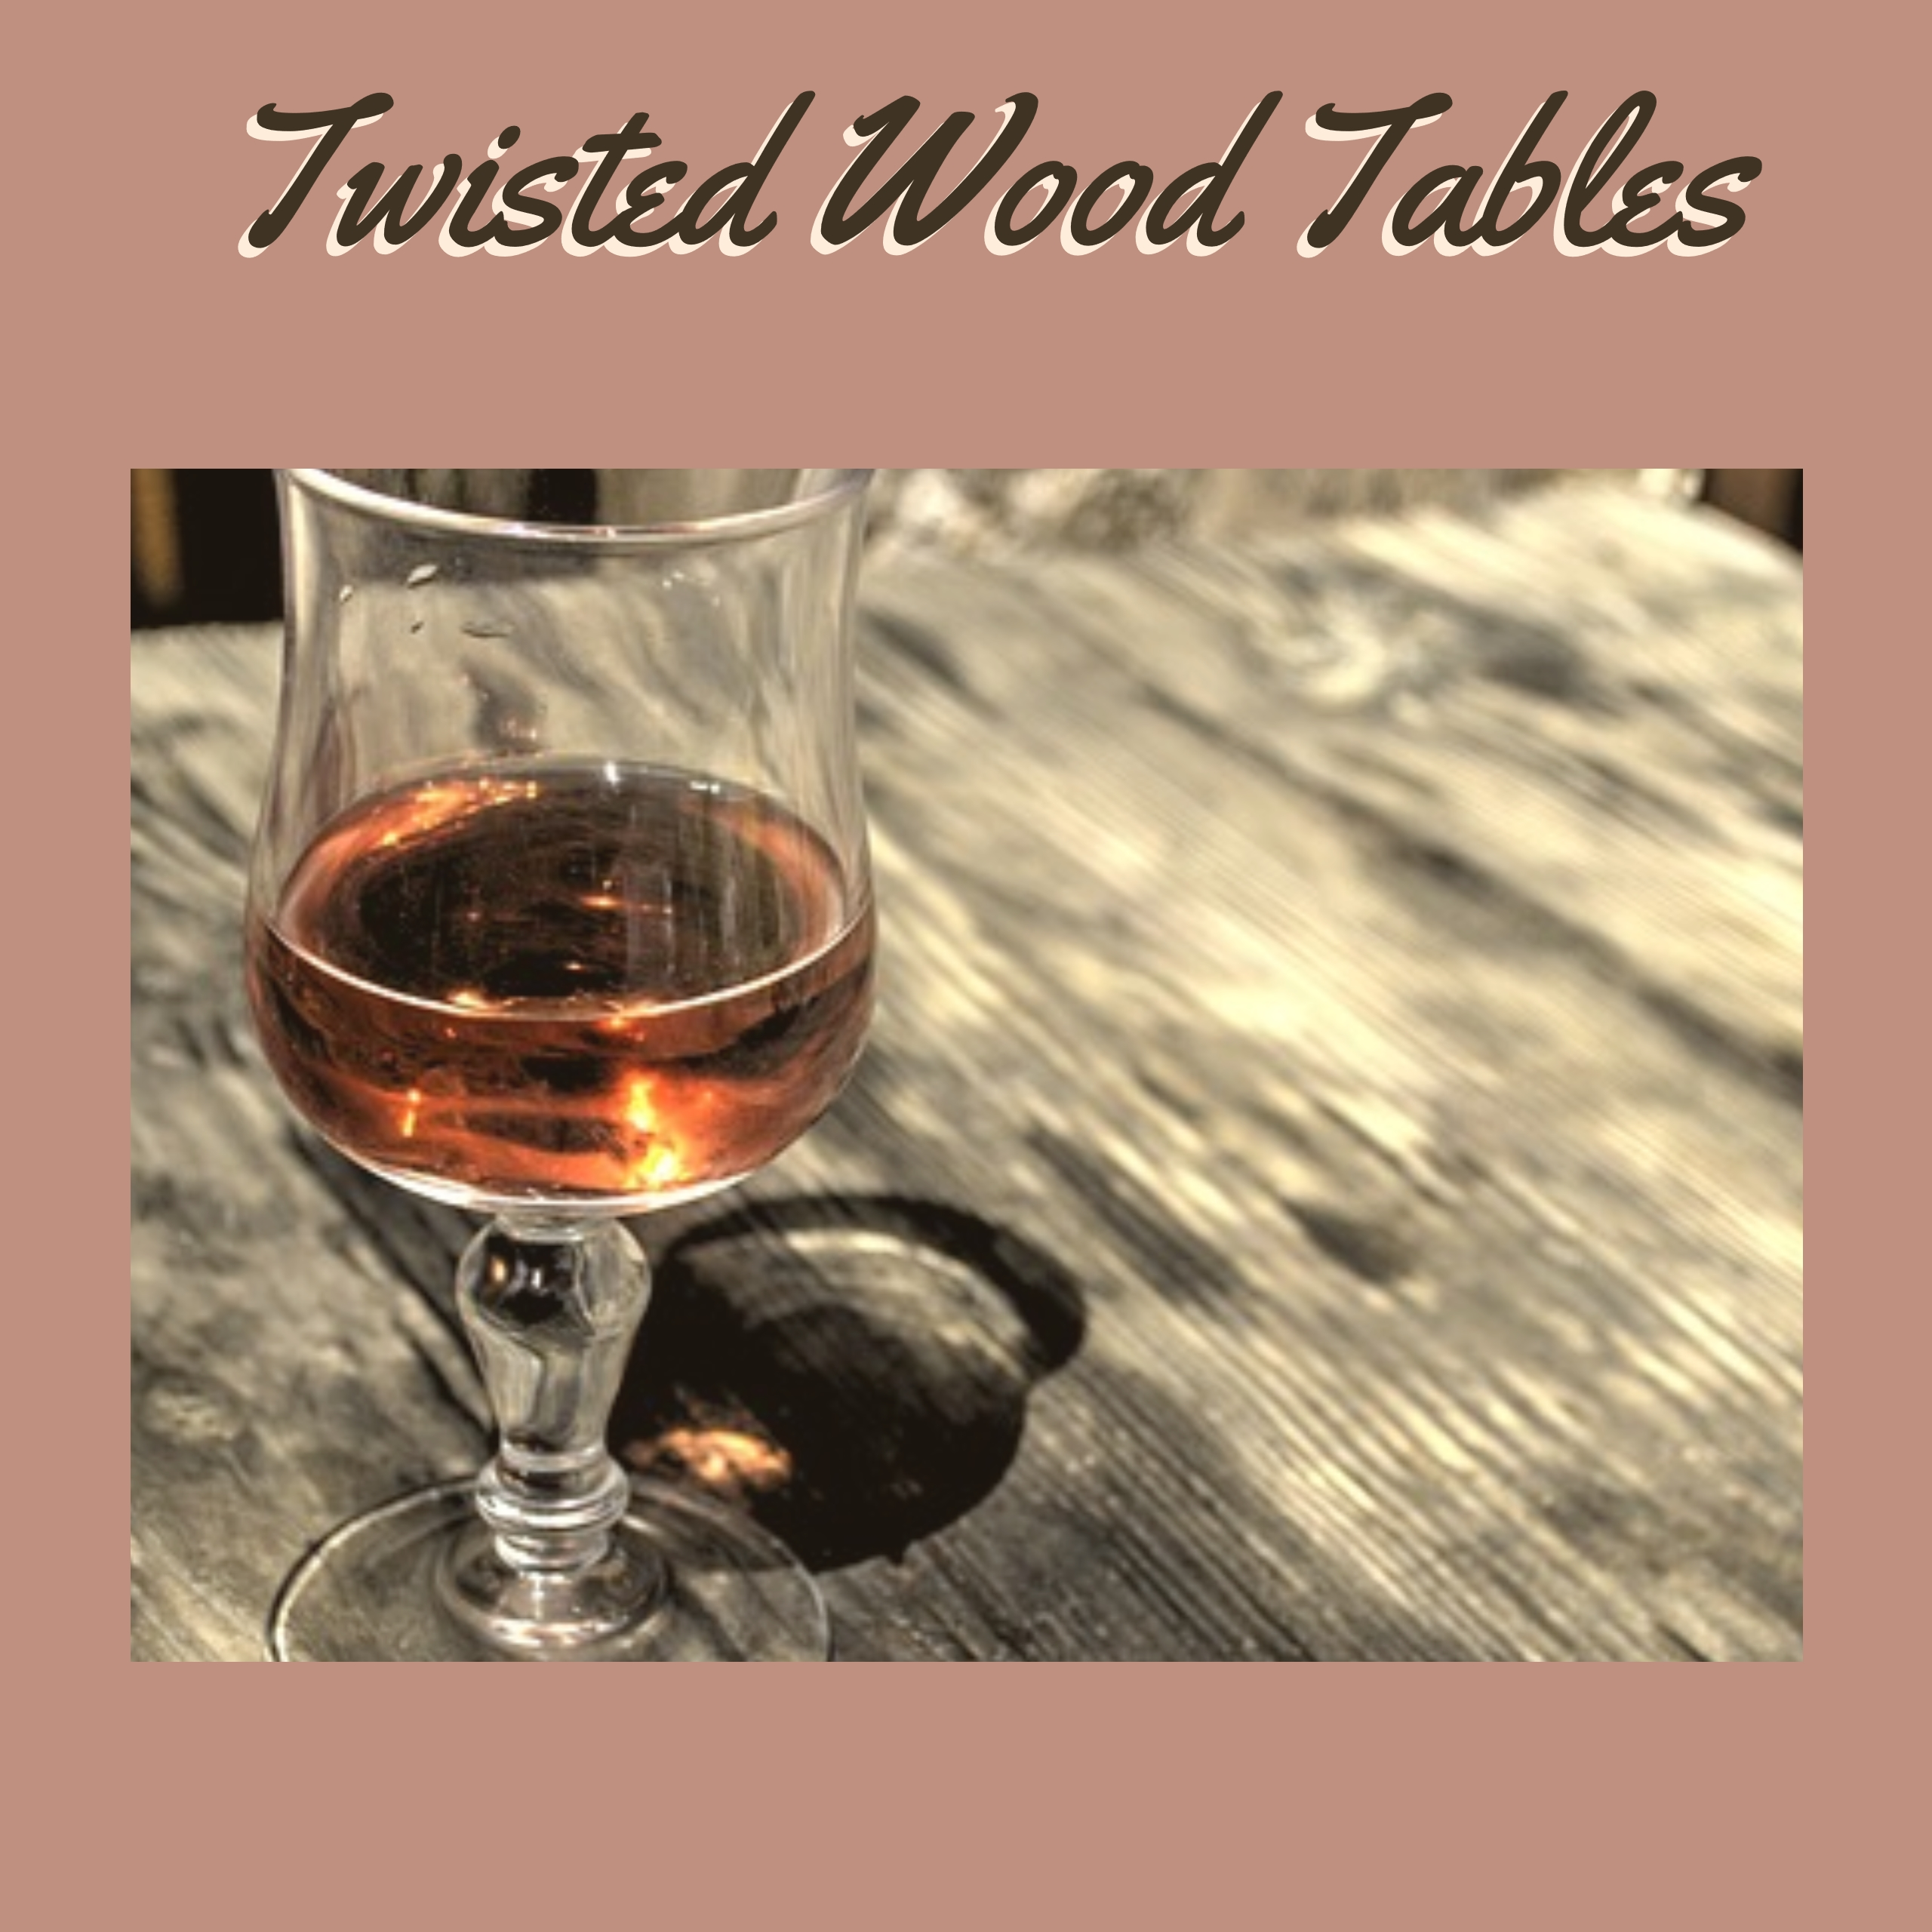 Twisted Wood Tables